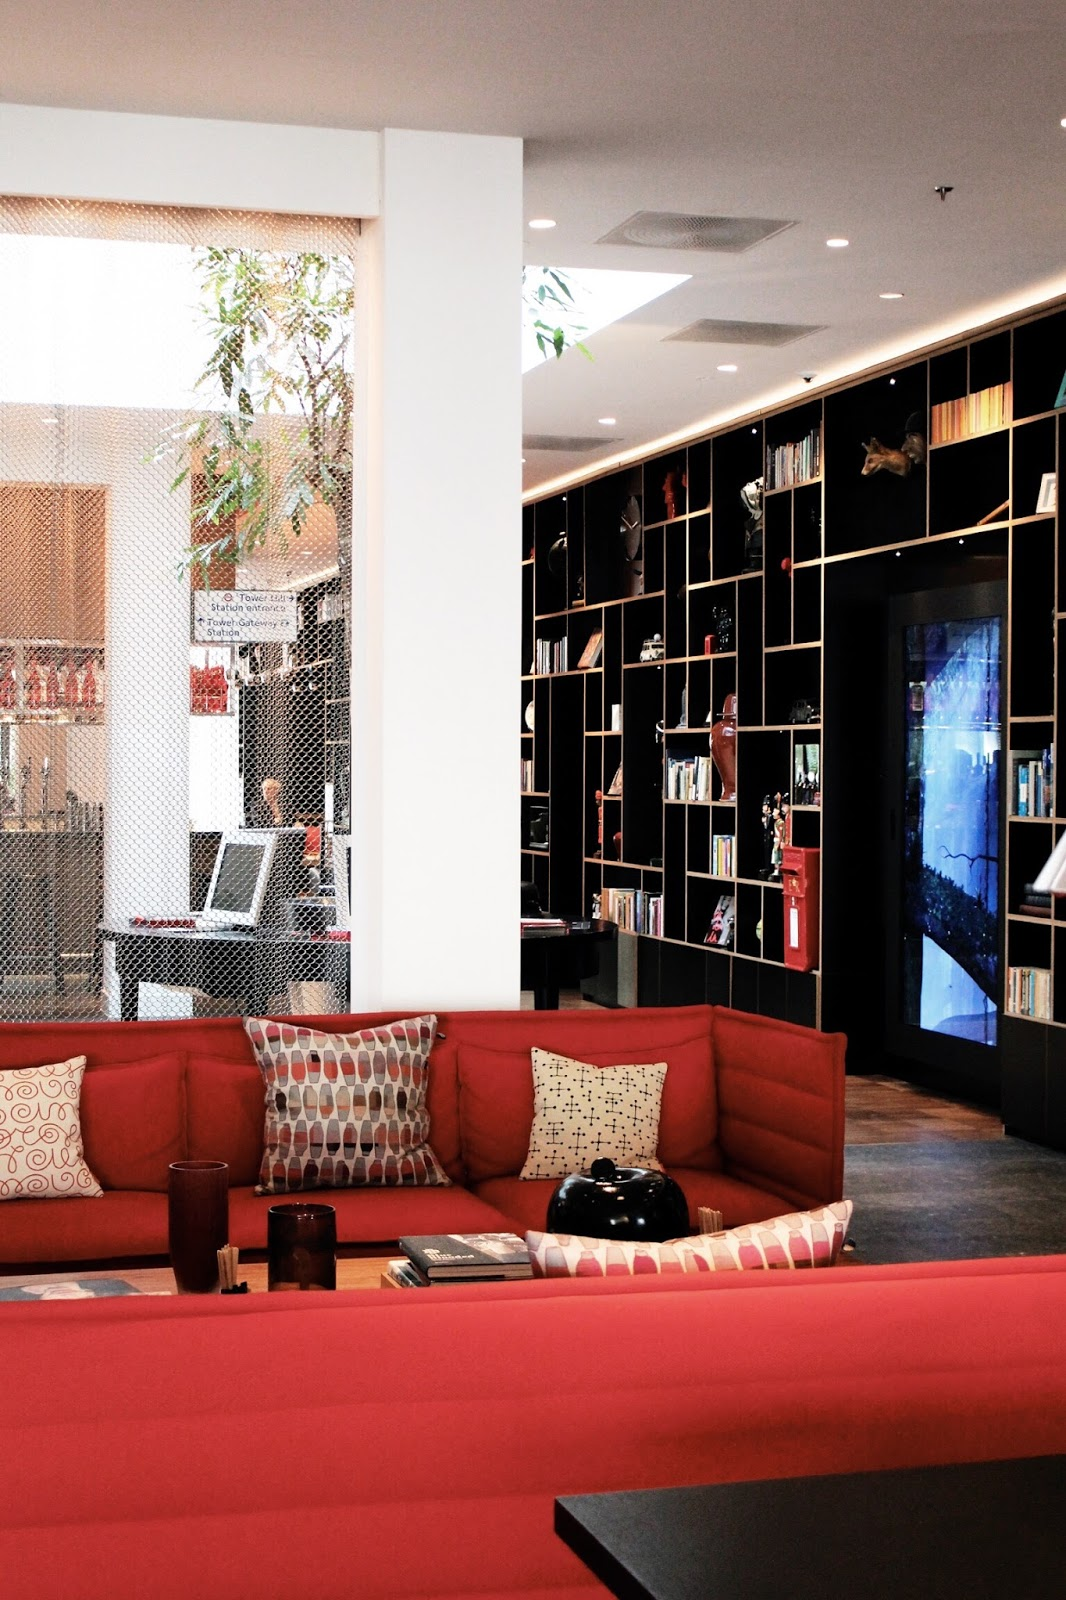 citizenM Tower of London hotel interior design